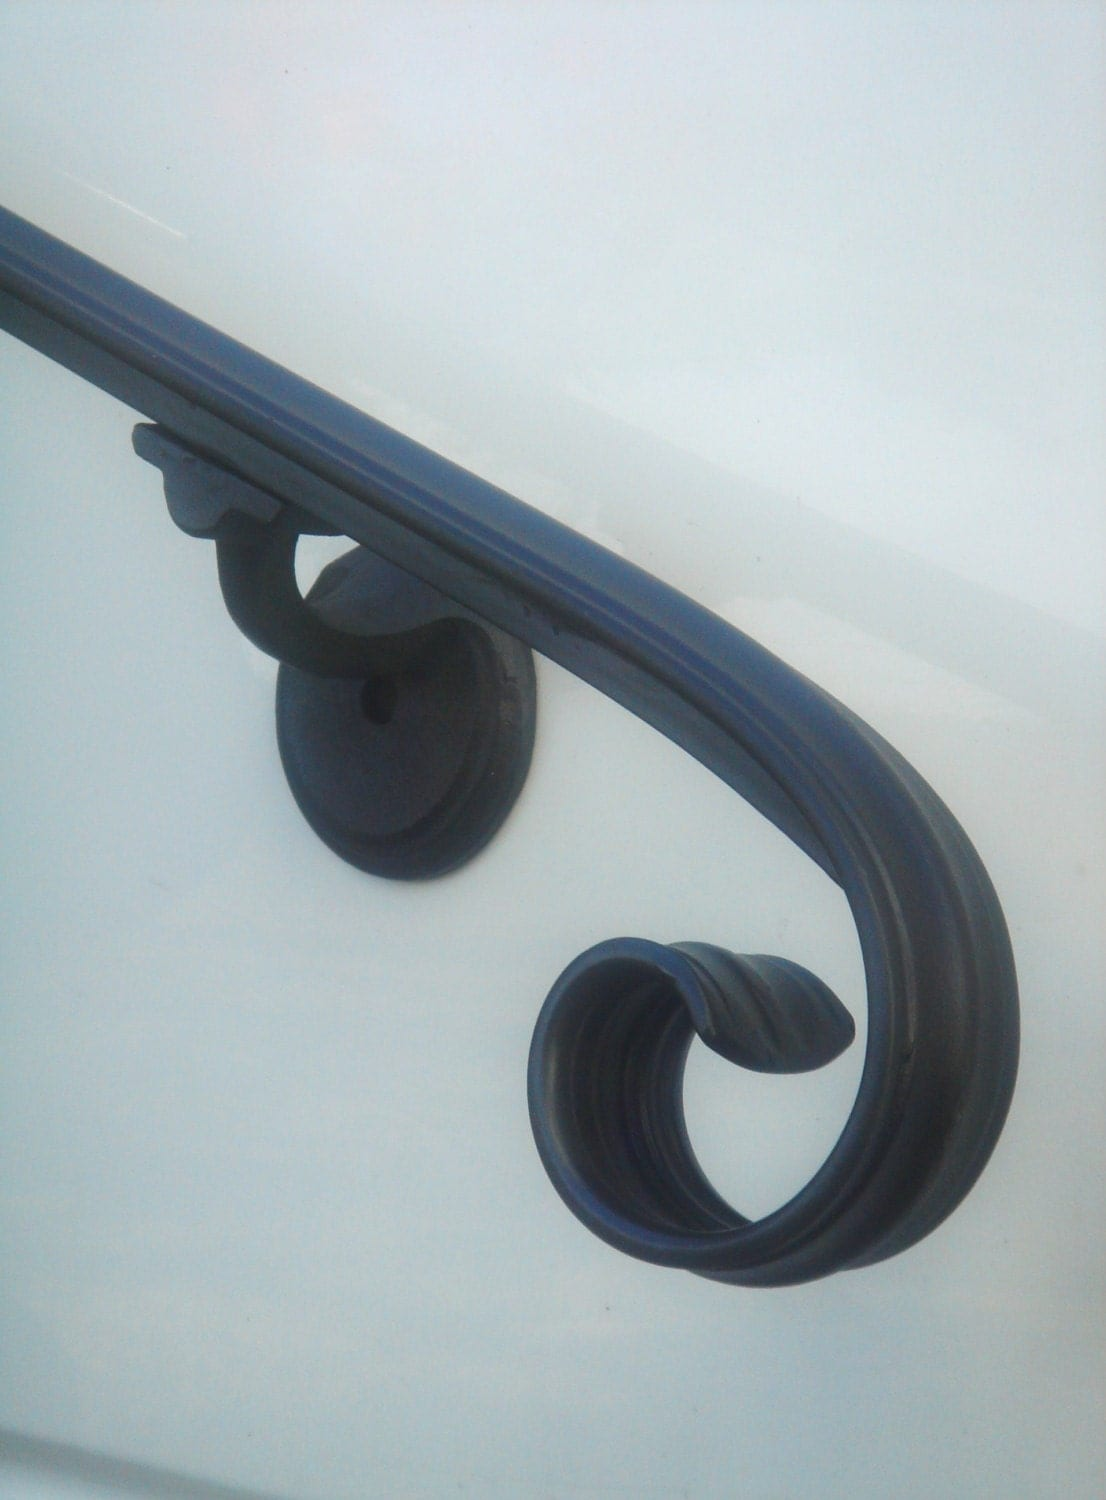 3 Ft Wrought Iron Hand Rail Wall Rail Stair Step By